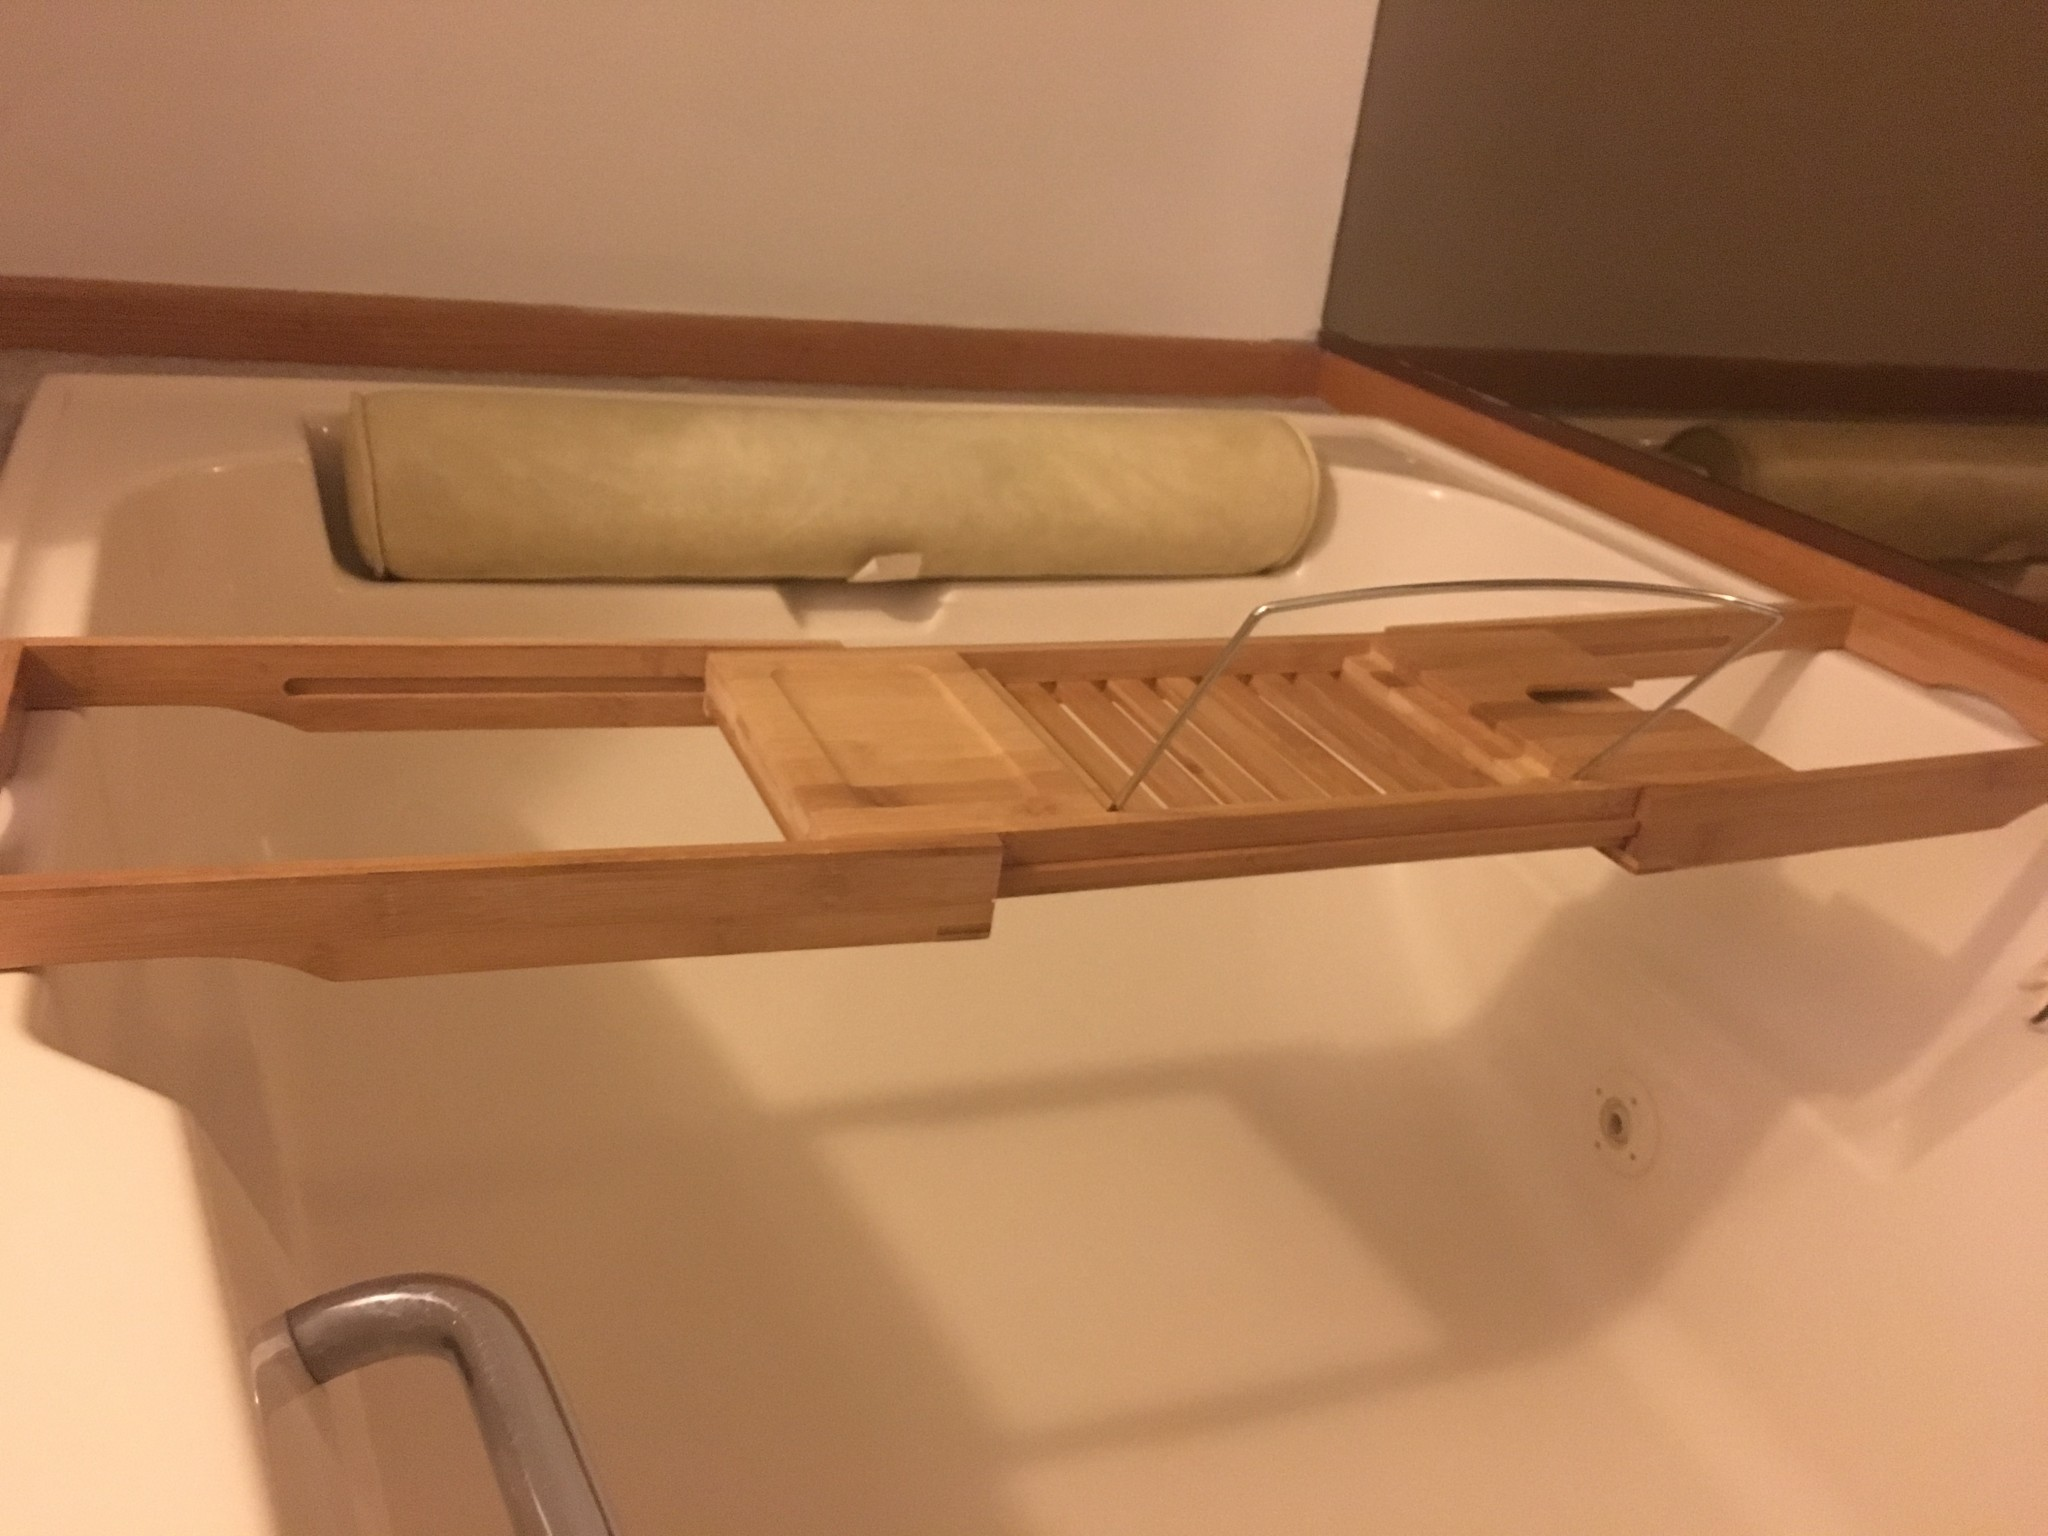 Bamboo Bathtub Spa Caddy Book Tablet Holder Extendable Sides ...